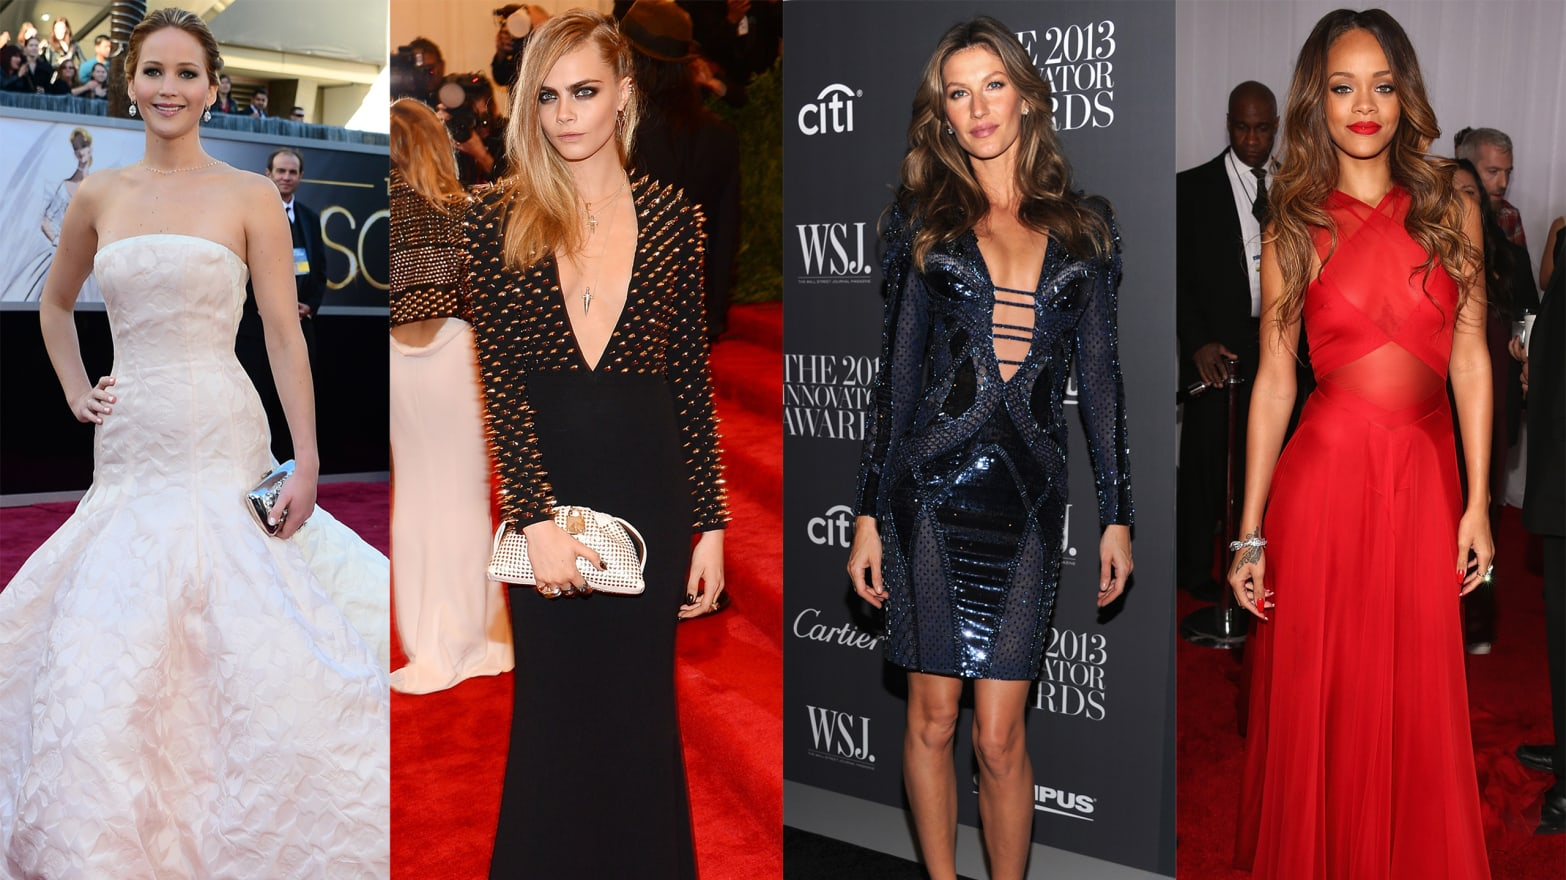 The Best and Worst Dressed Celebrities of 2013 (Photos)